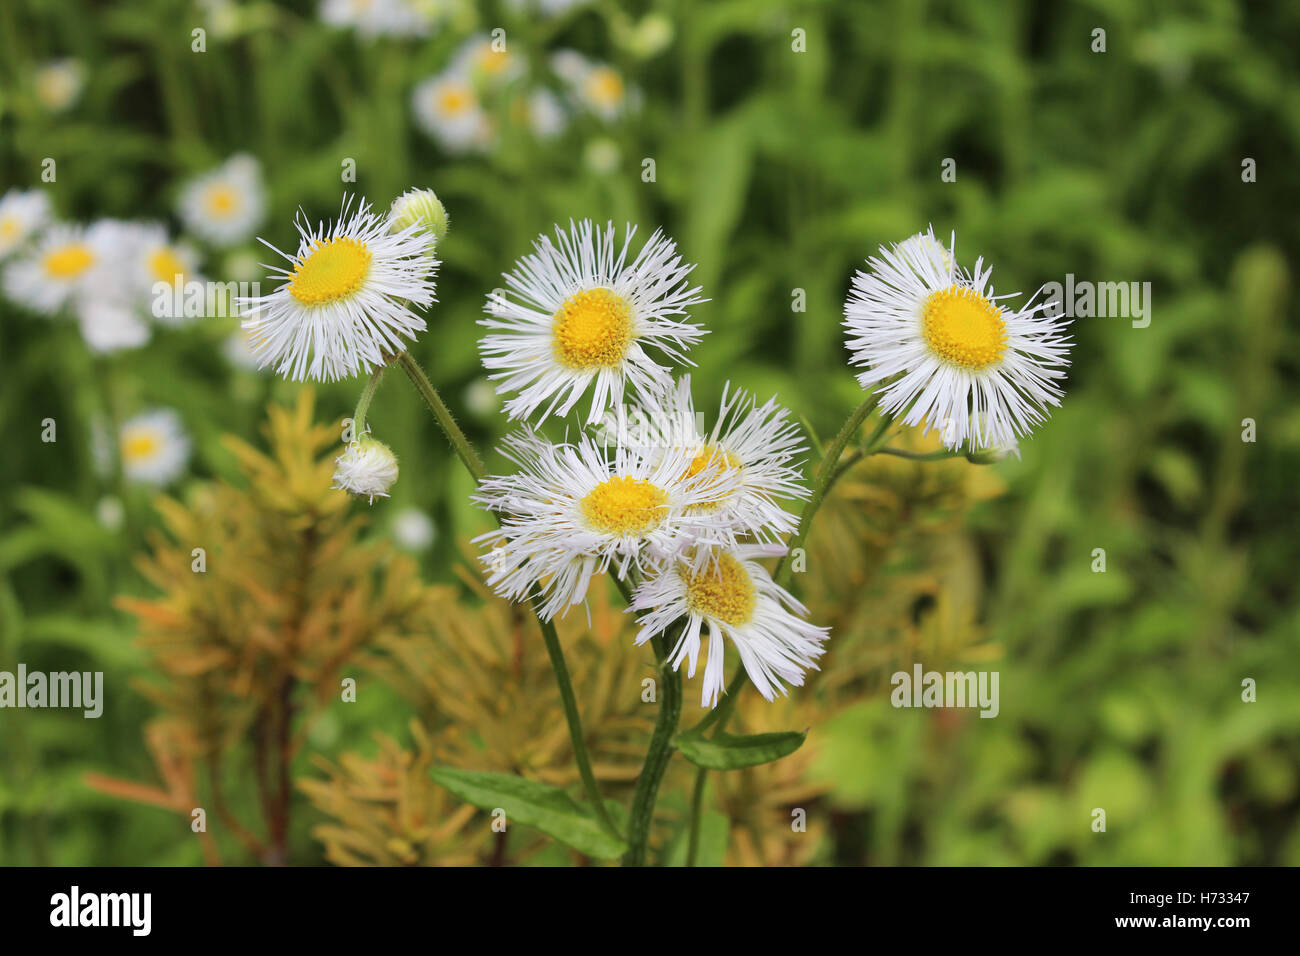 Flower With White Petals And Yellow Center Stock Photos Flower